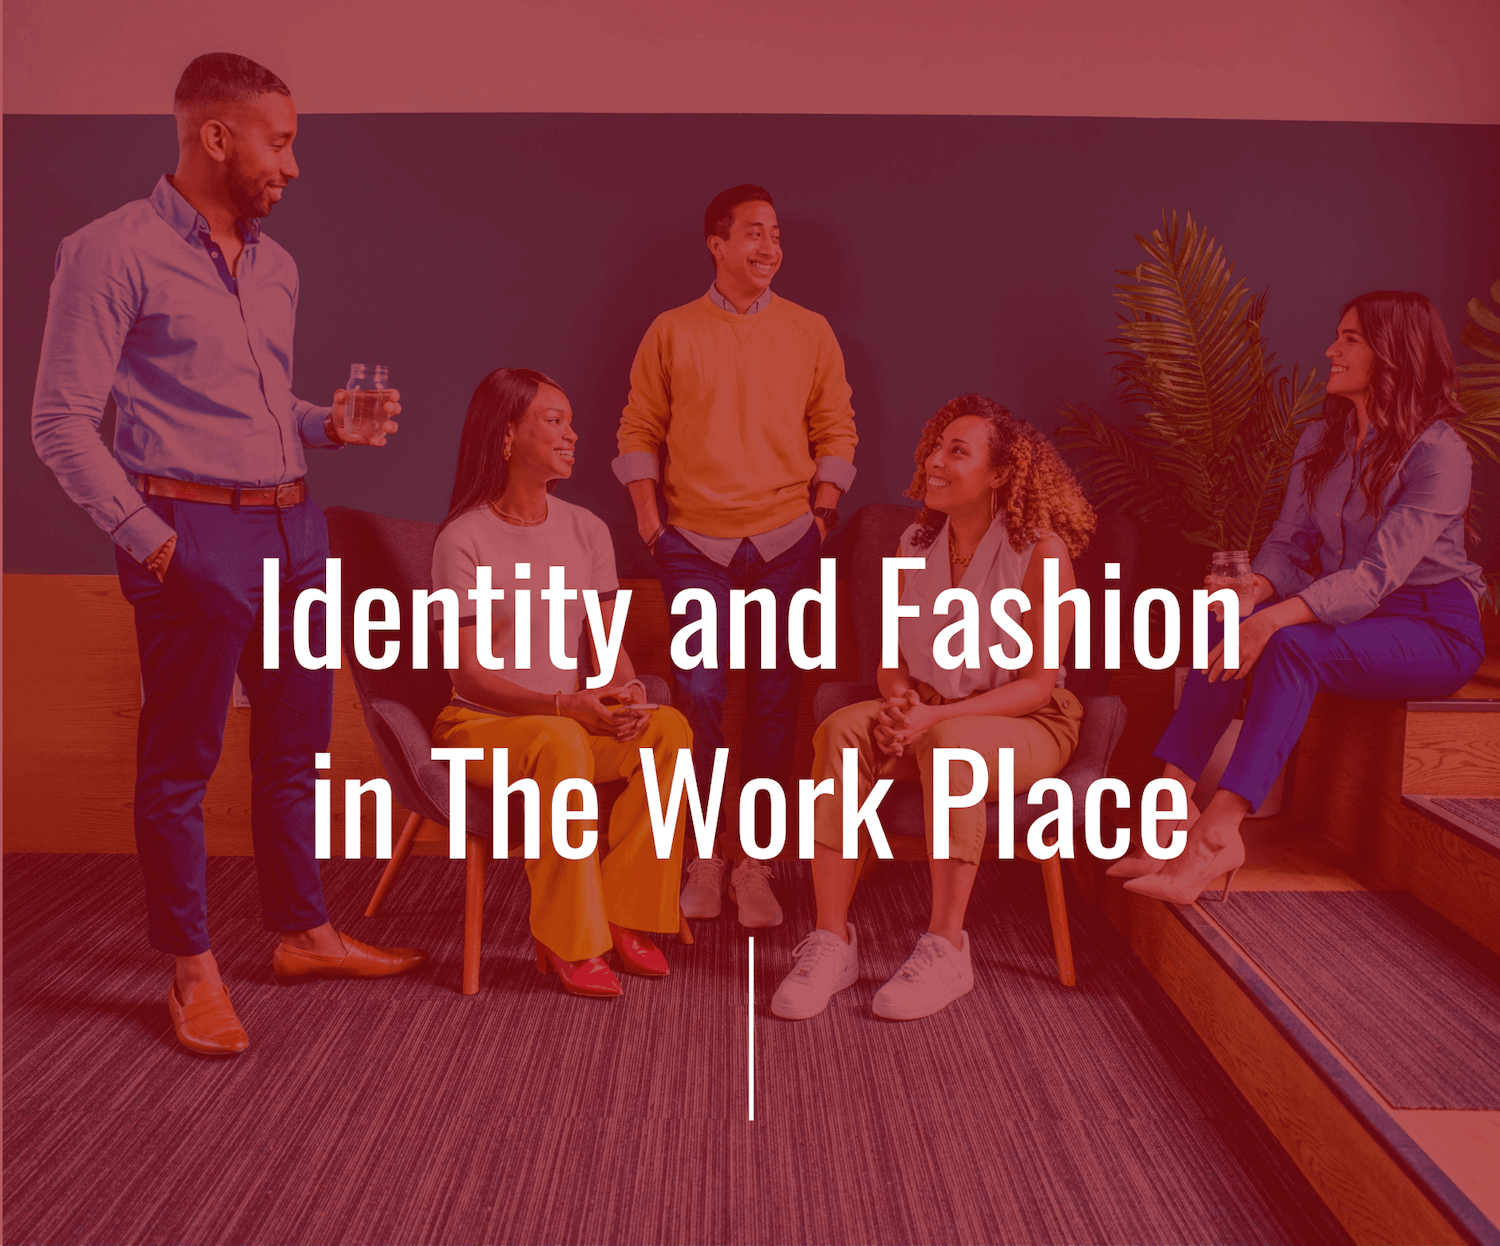 Identity and Fashion in The Work Place (1).png